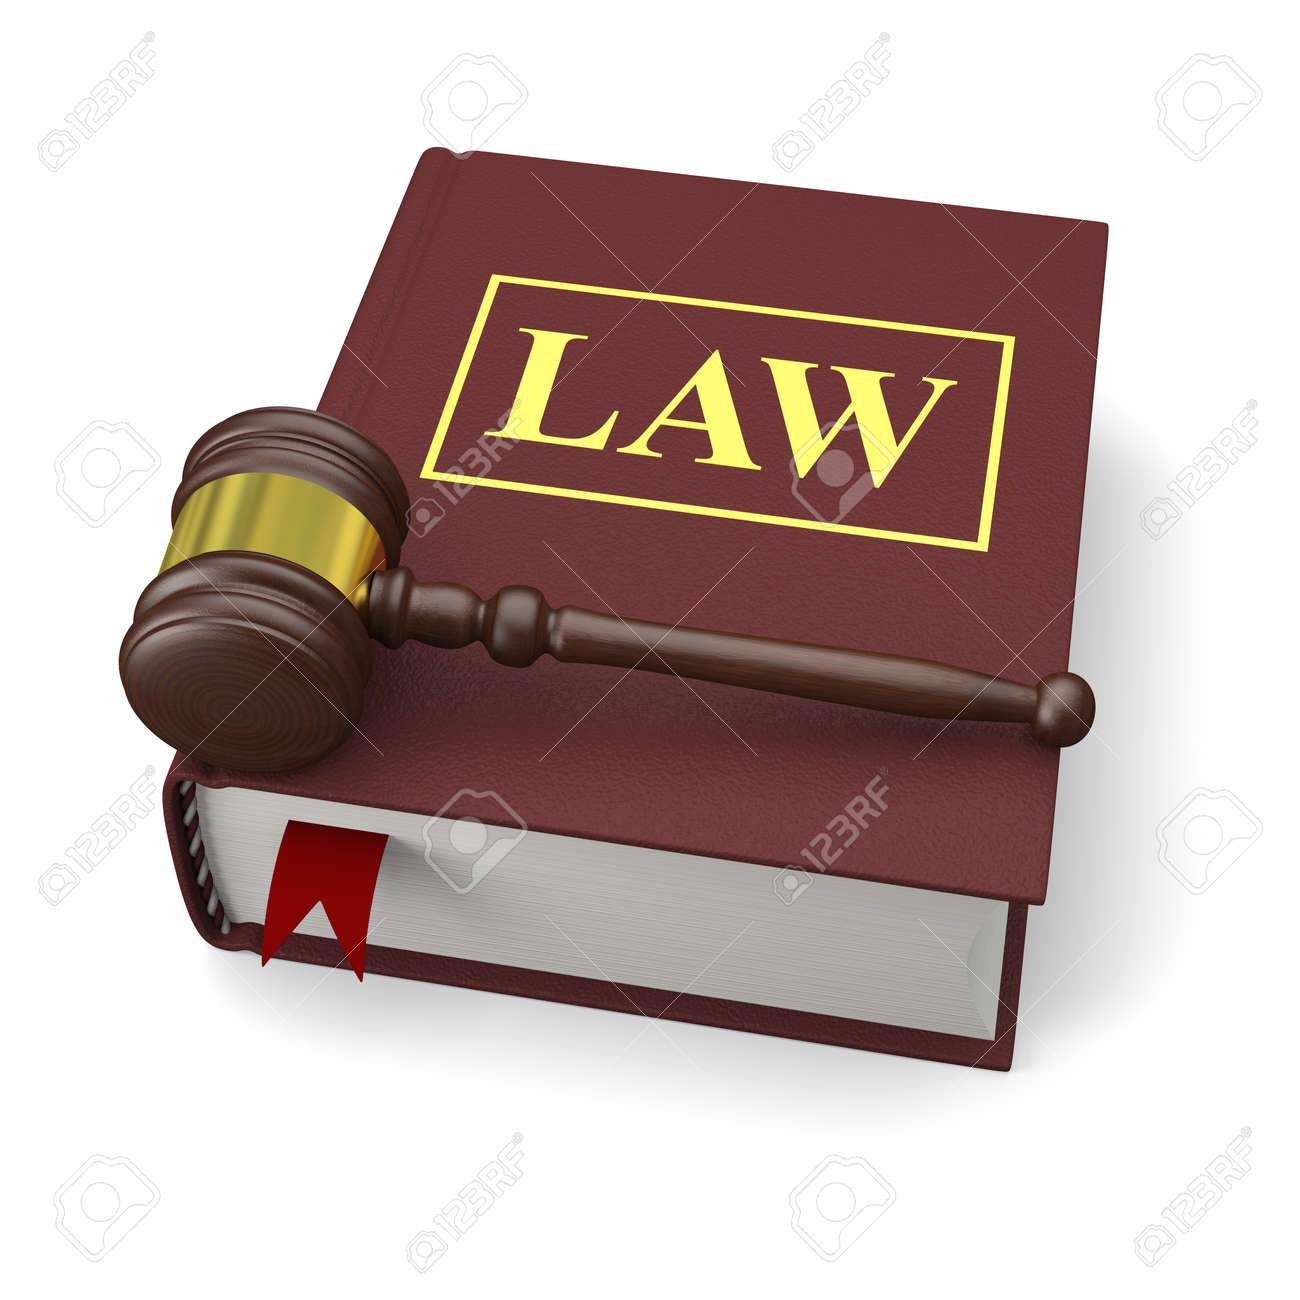 Gavel and law book isolated on white background symbols of law gavel and law book isolated on white background symbols of law and justice stock photo buycottarizona Gallery